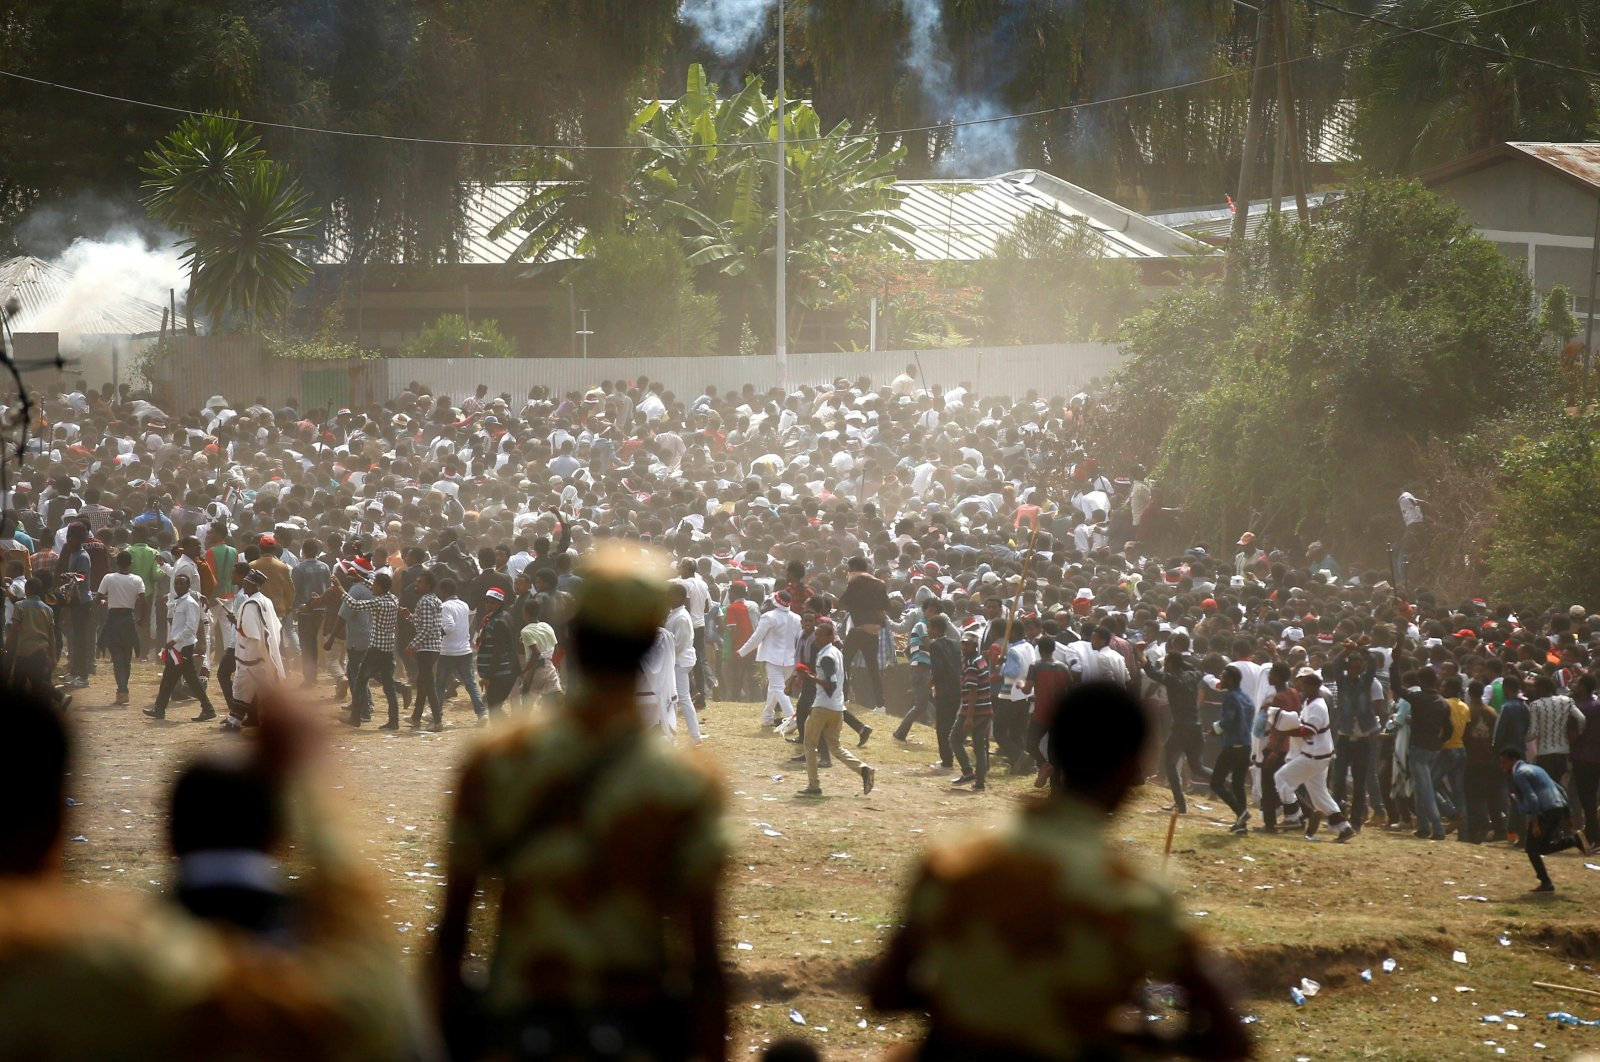 Protestors run from tear gas launched by security personnel during the Irecha, the thanksgiving festival of the Oromo people in Bishoftu town of Oromia region, Ethiopia, Oct. 2, 2016. (Reuters Photo)